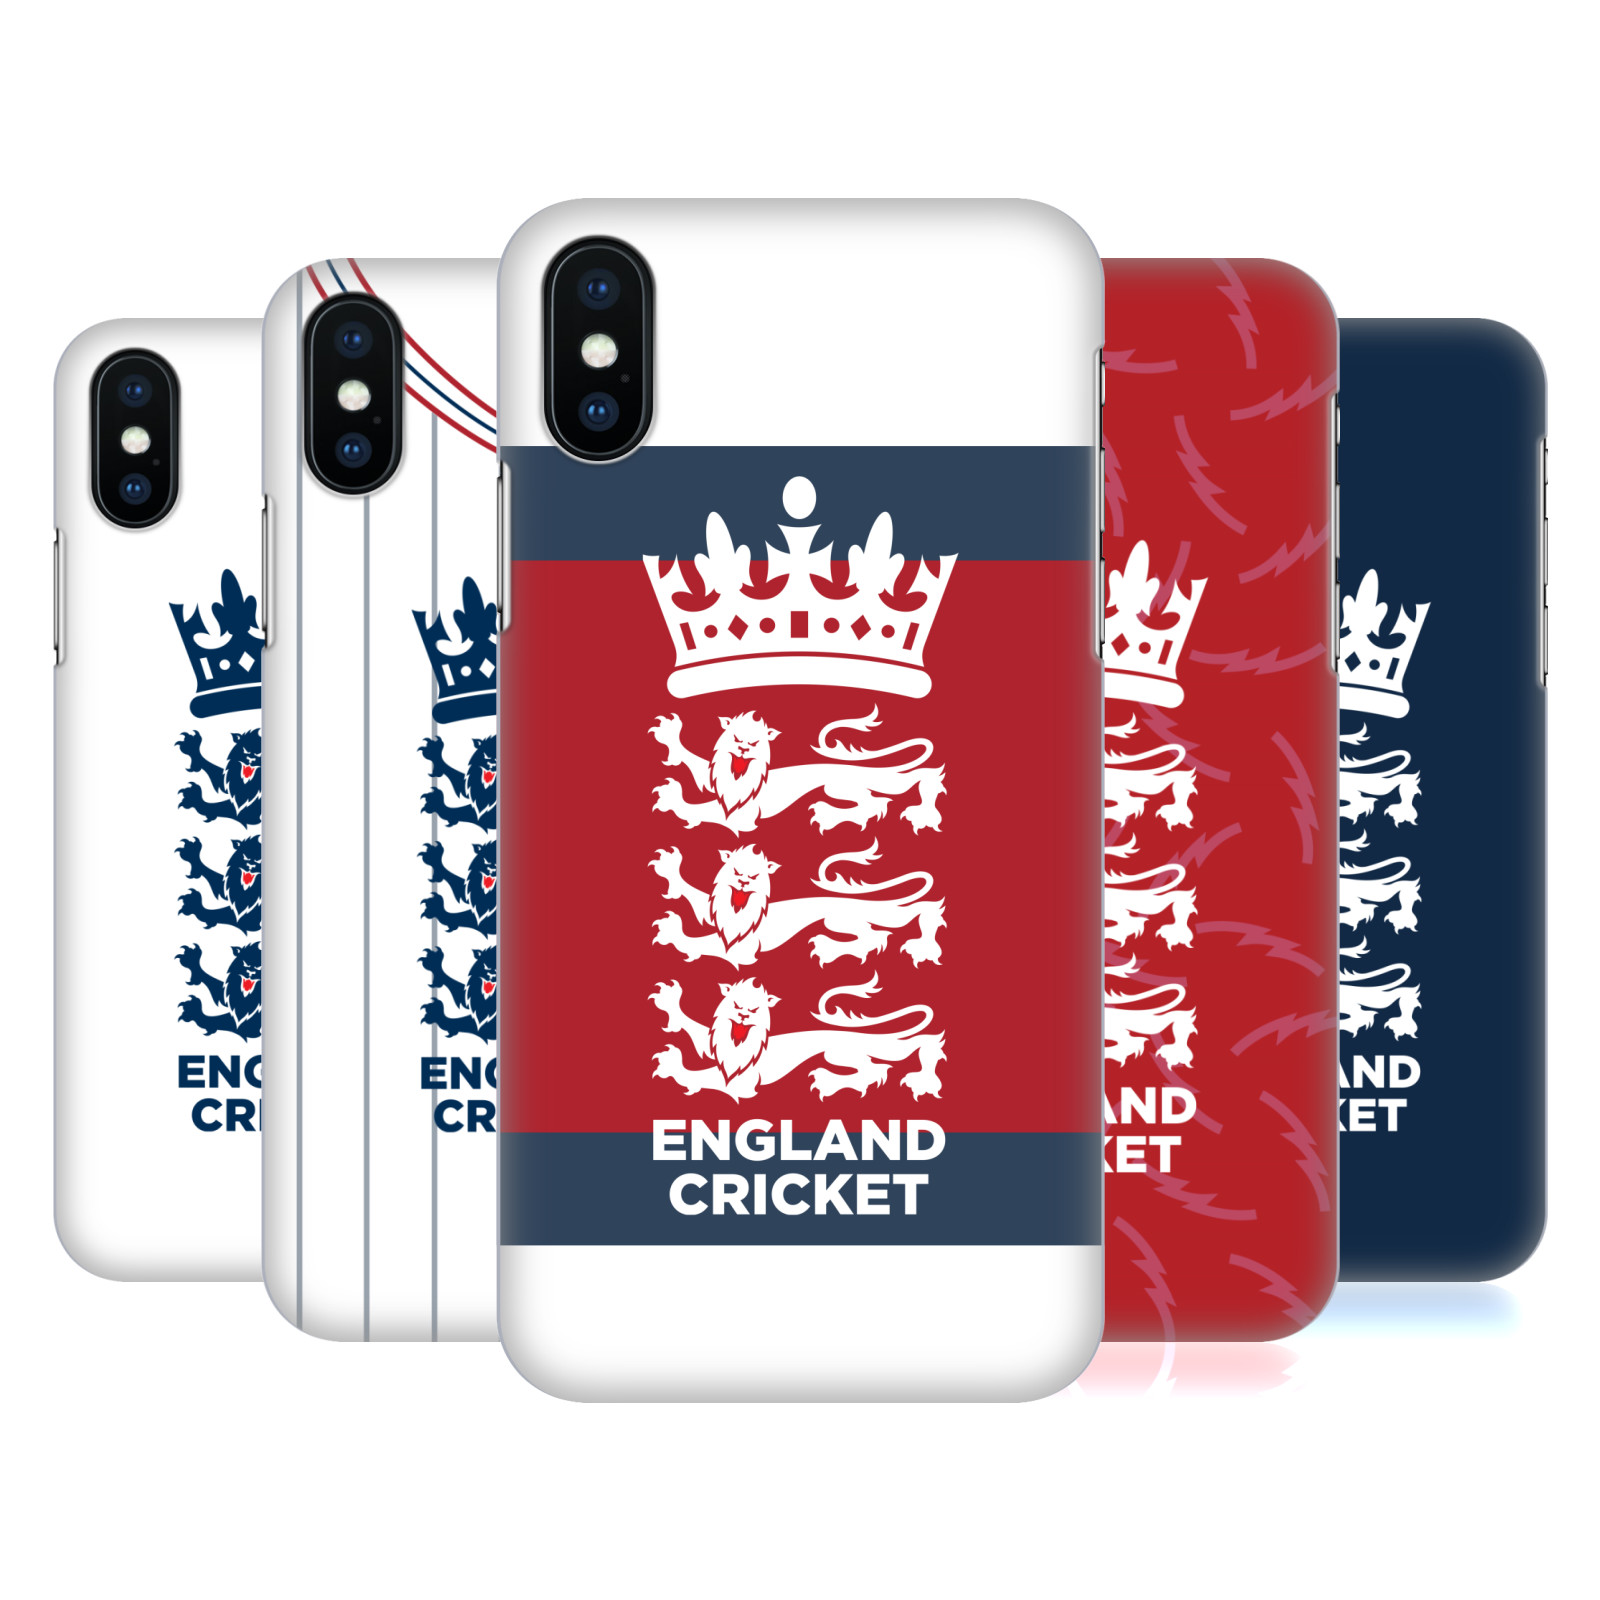 England and Wales Cricket Board 2018/19 Crest